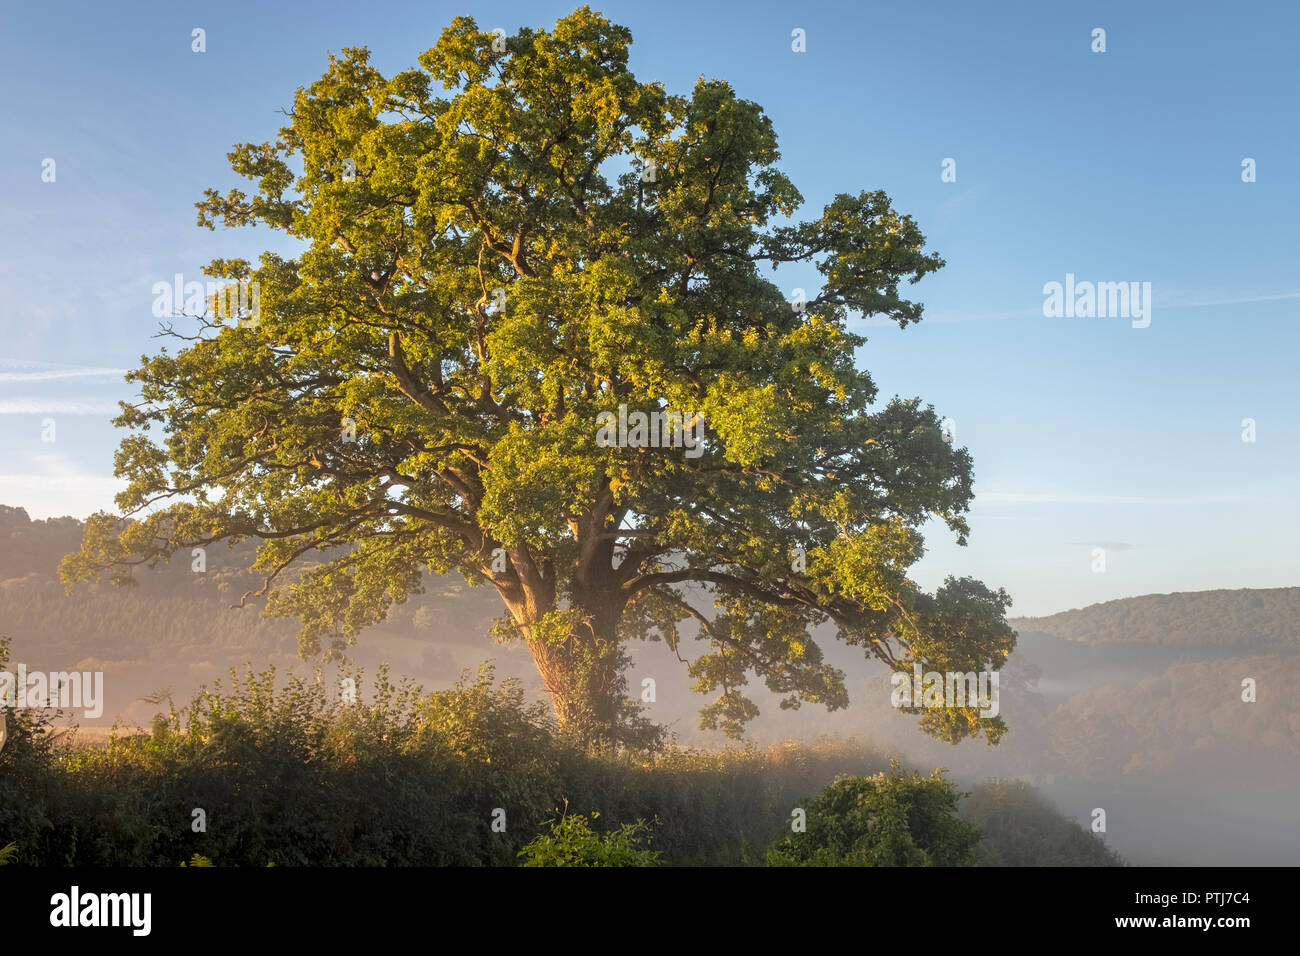 Oak tree bathed in sunshine and surrounded by morning mist in the Wye valley at Bigsweir. - Stock Image